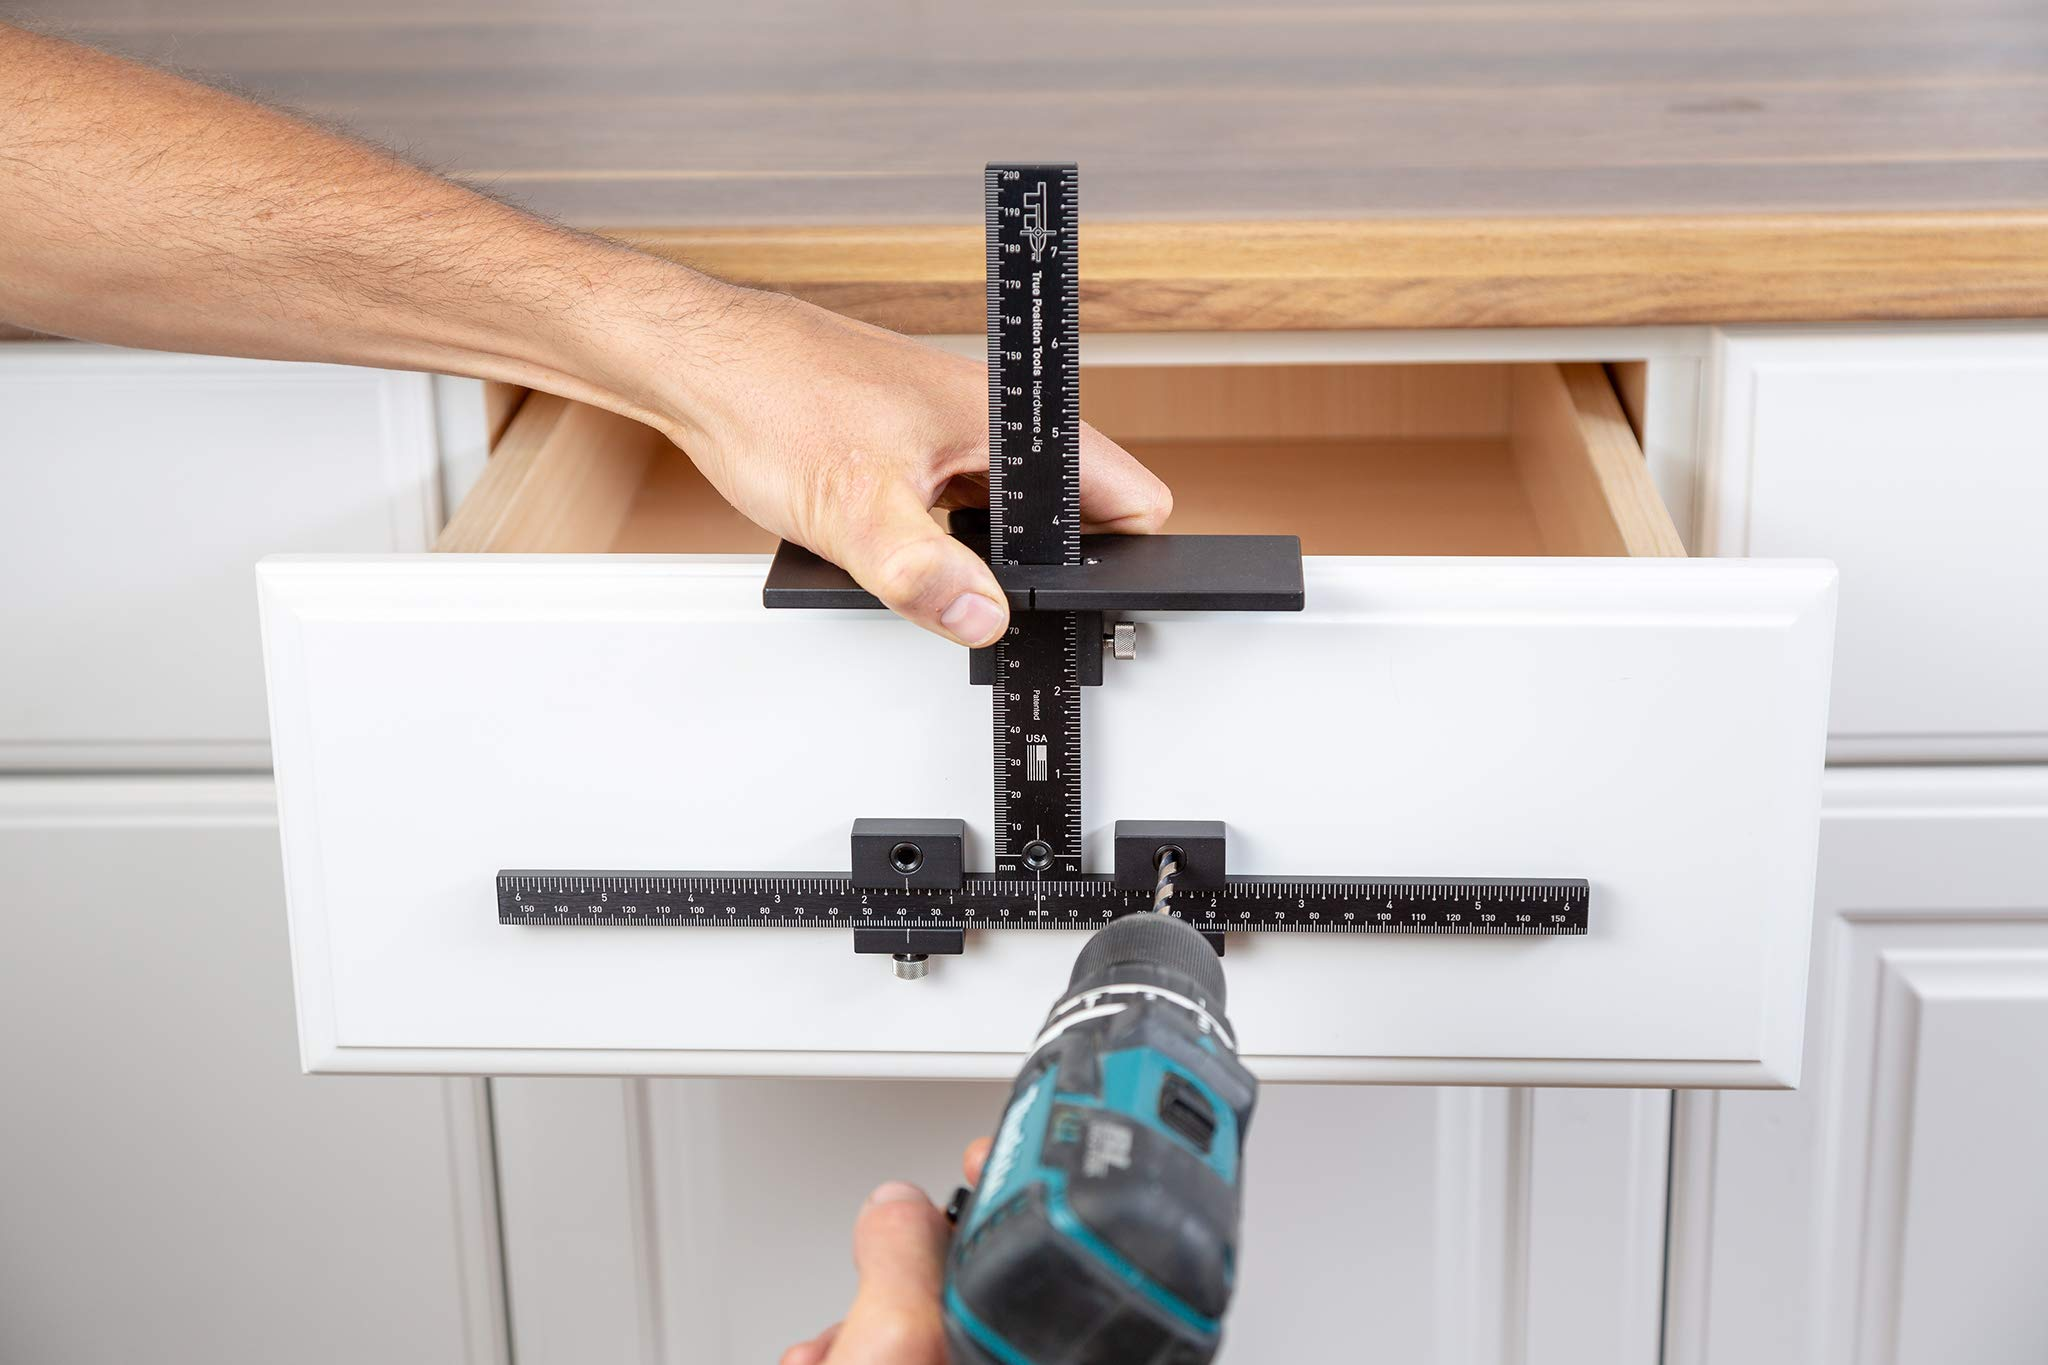 Cabinet Handle Template Jig Tool - Accurate Drawer Knob ...